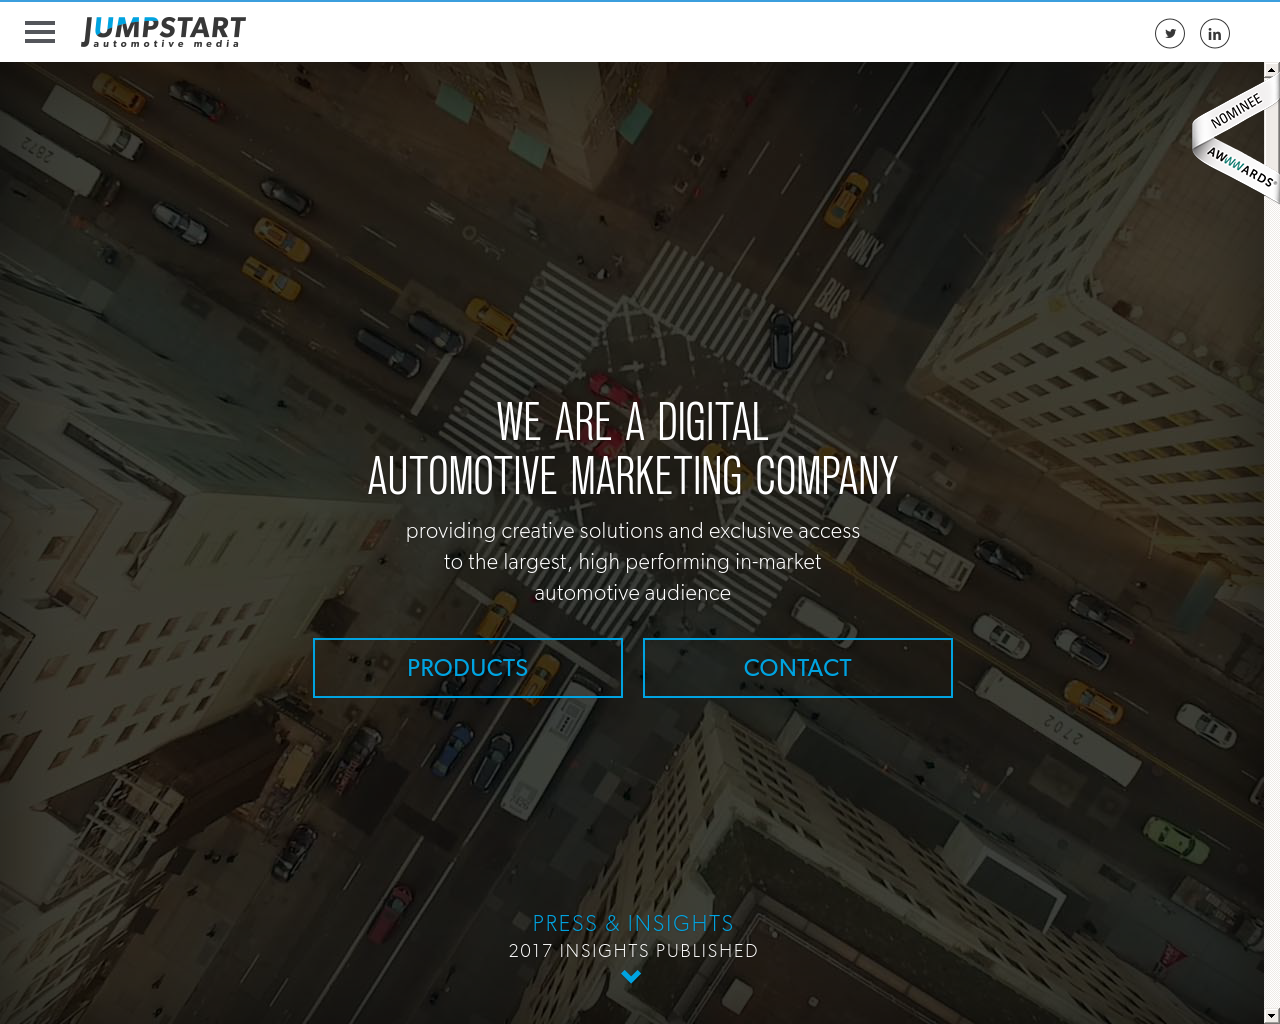 Jumpstart-Auotomotive-Group-Advertising-Reviews-Pricing